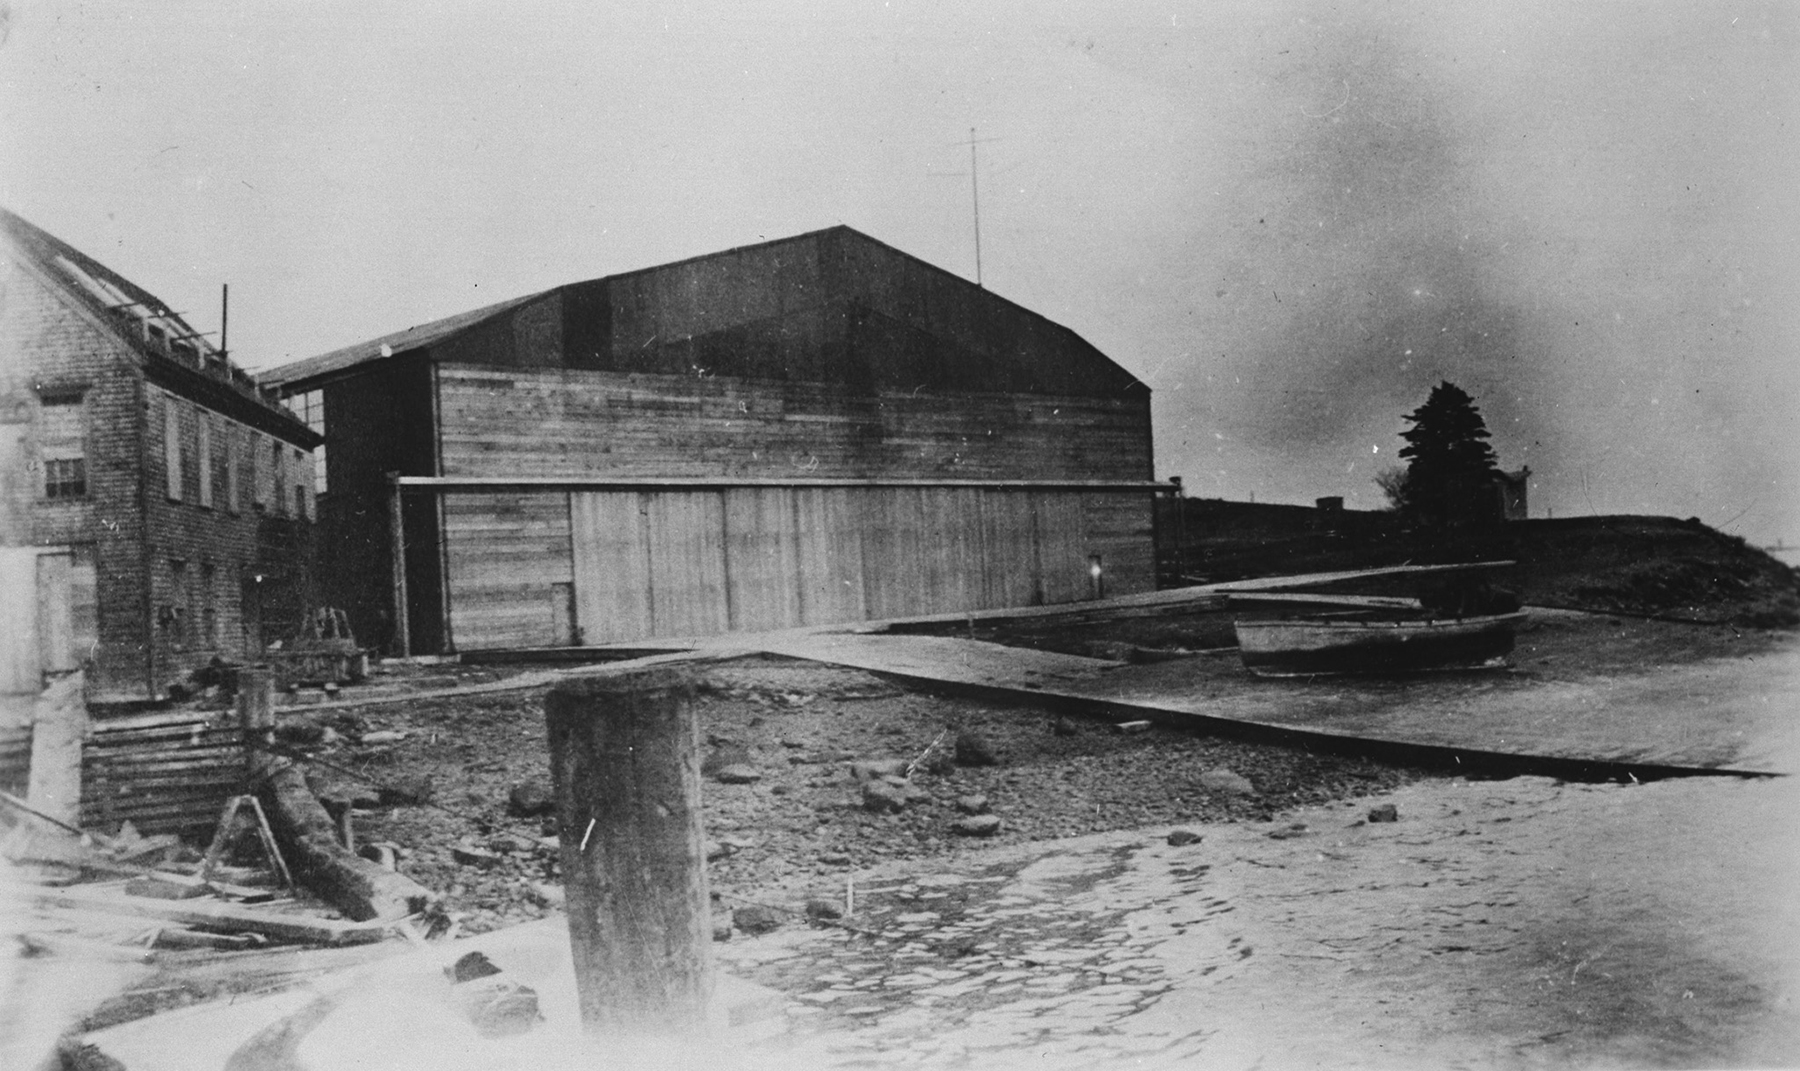 The hangar and ramp at the Naval Air Station, Eastern Passage, Dartmouth, Nova Scotia, in spring 1919. PHOTO: DND Archives, CN-6509